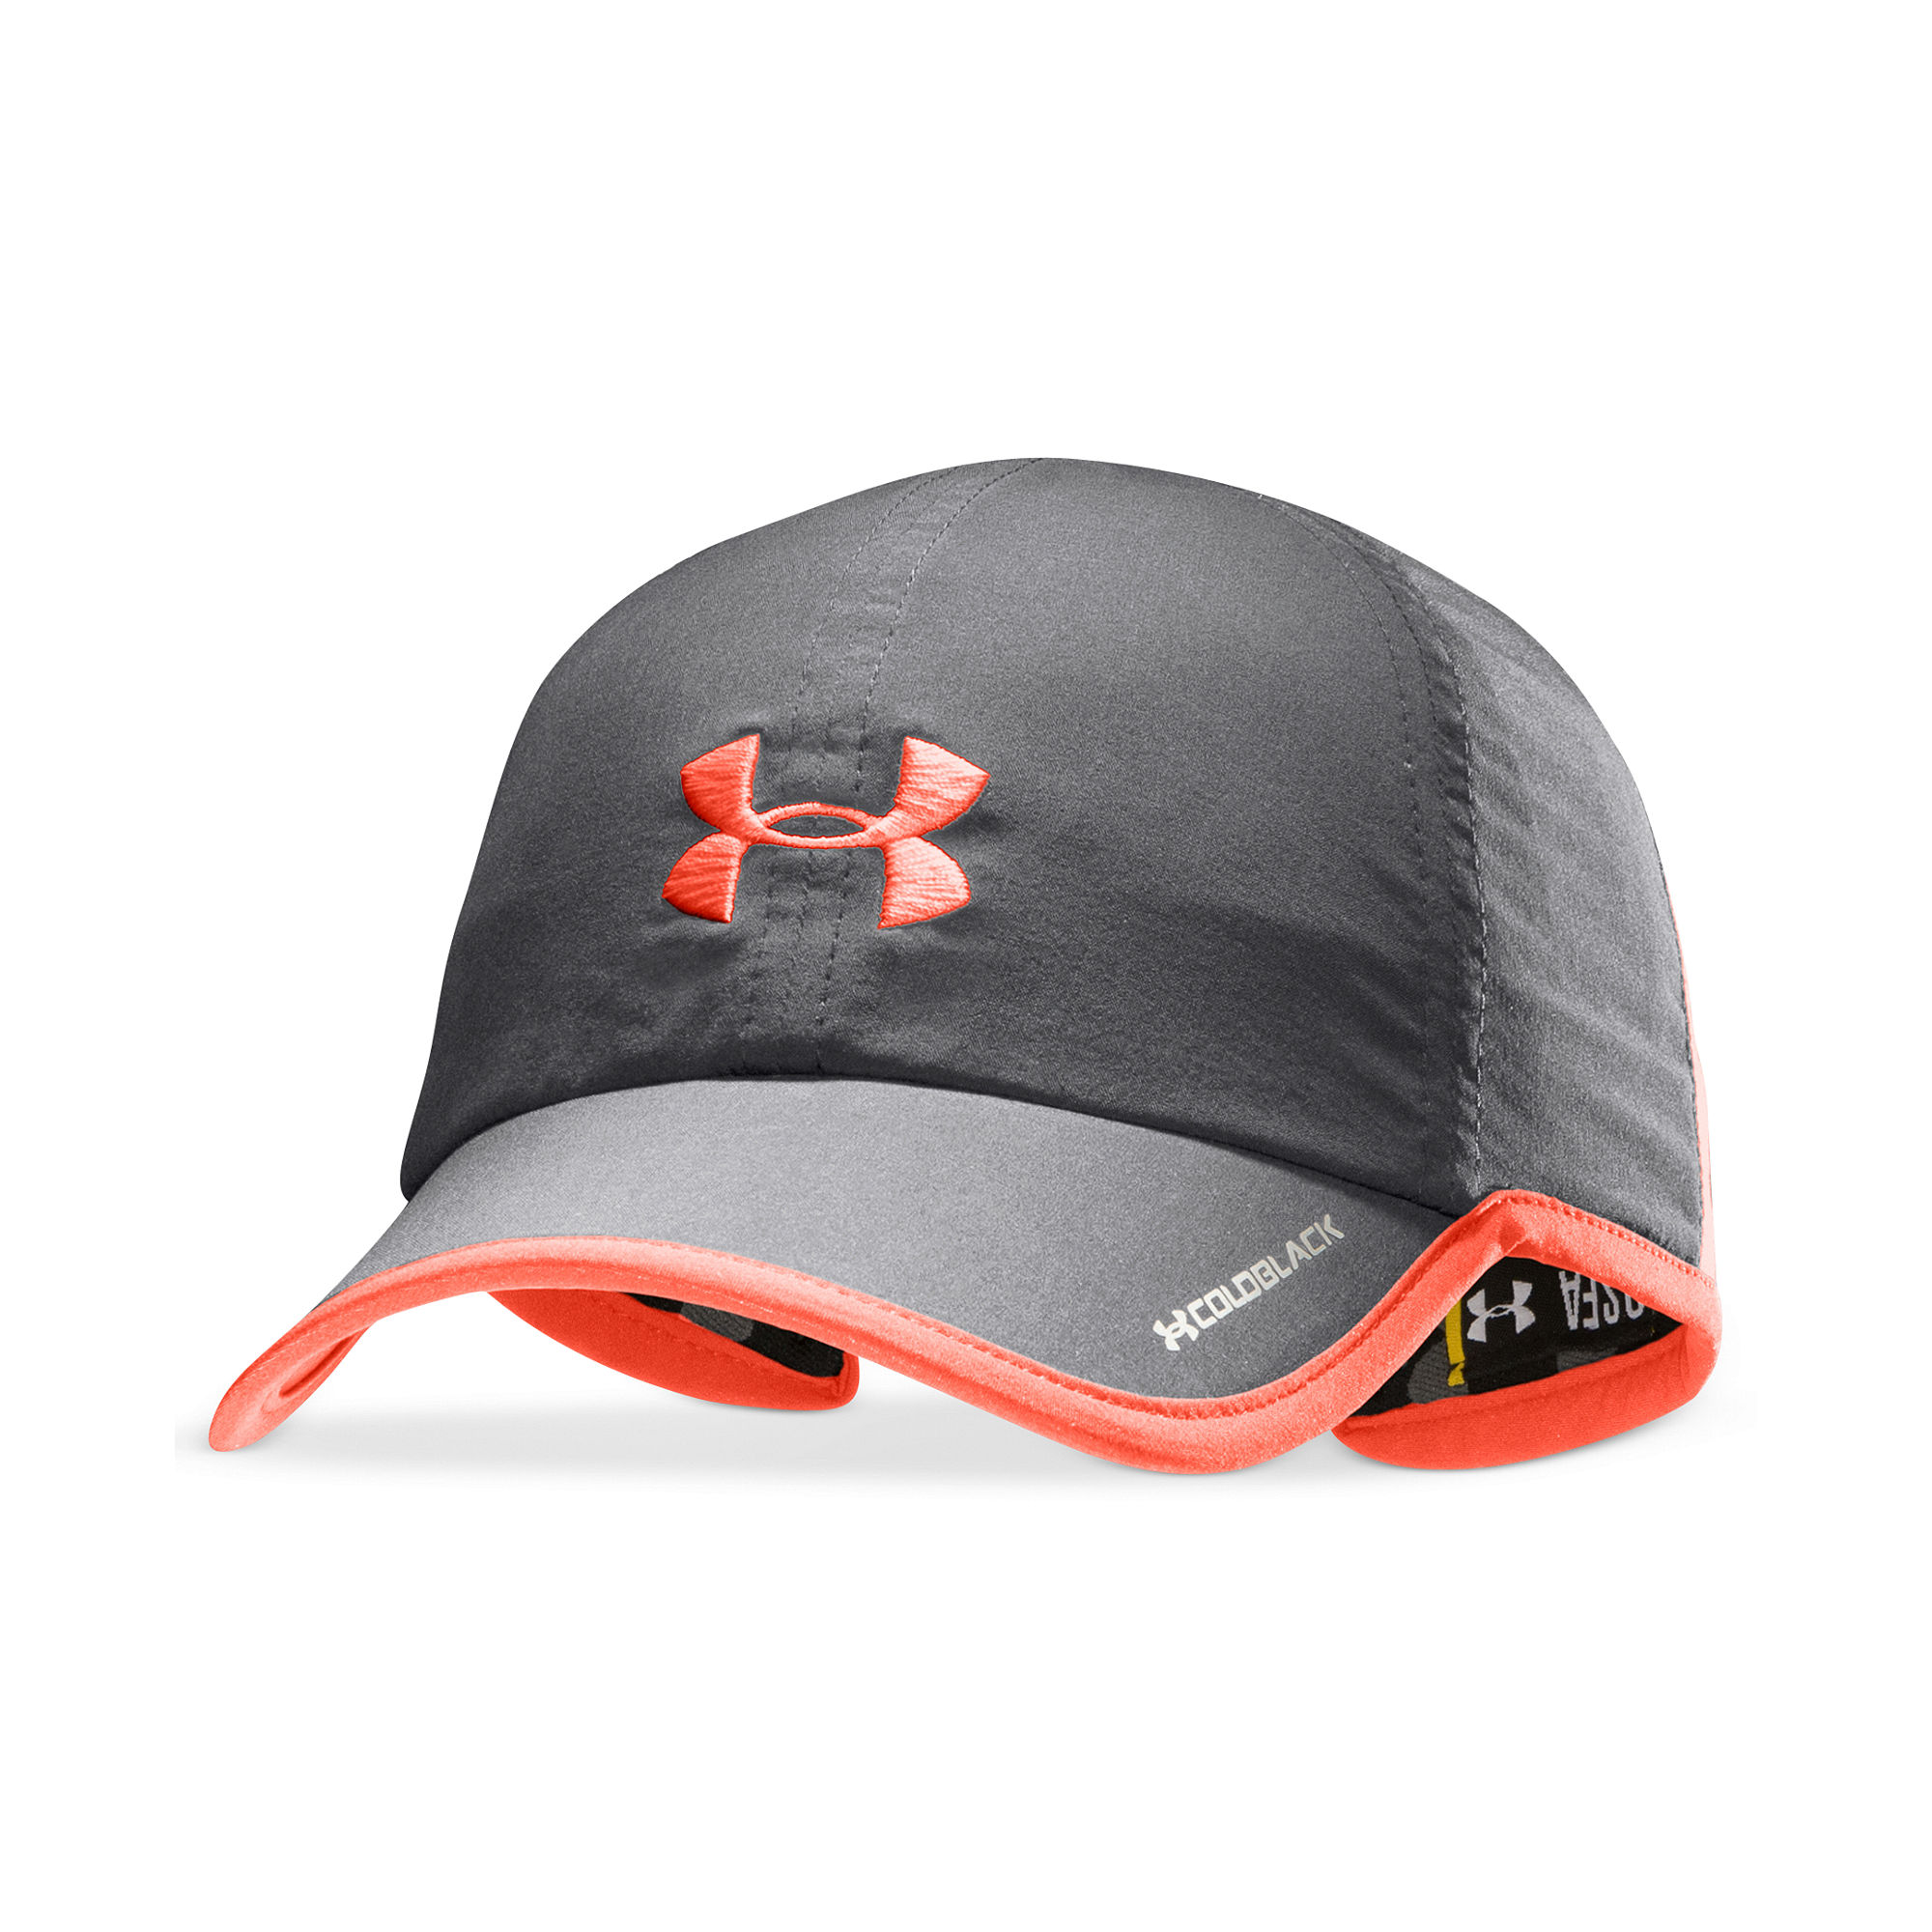 d7cfe768049e Under Armour Shadow Sport Cap in Black - Lyst